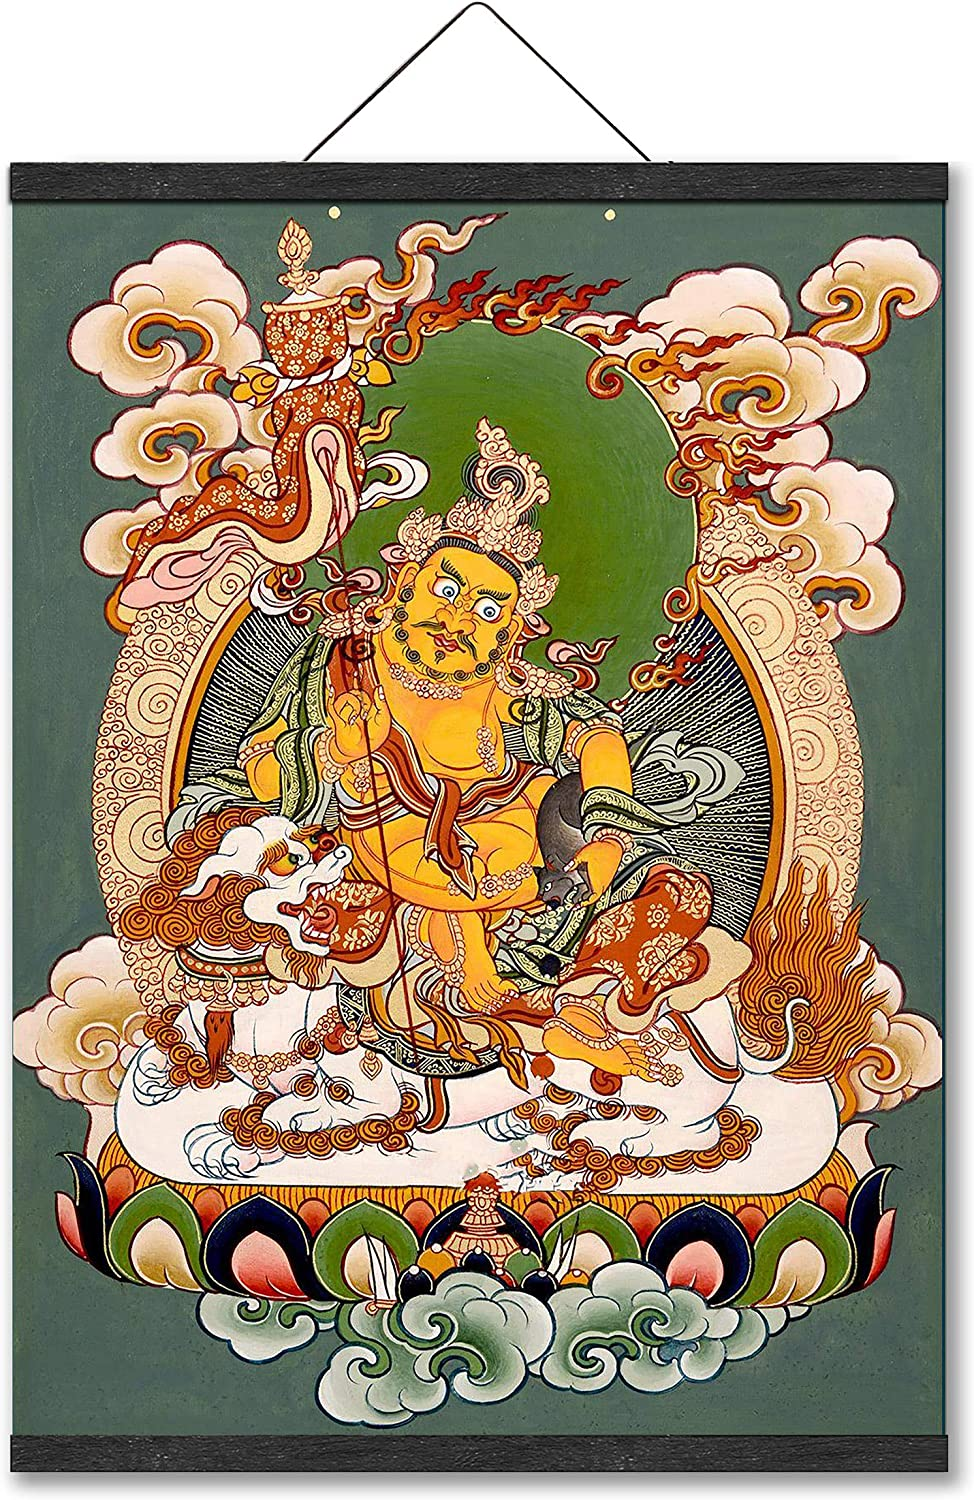 Kubera The God of Wealth The King of Wealth Yellow Fortune God Tibetan TangKa Thangka Buddhist Thang-ga Religion Gifts Hanging Poster Oriental Buddhist Artwork Wall Art for Home Décor Yoga Meditation Feng Shui Picture Canvas Prints with Magnetic Hanger Clip Frame (20 x 26 Inch)